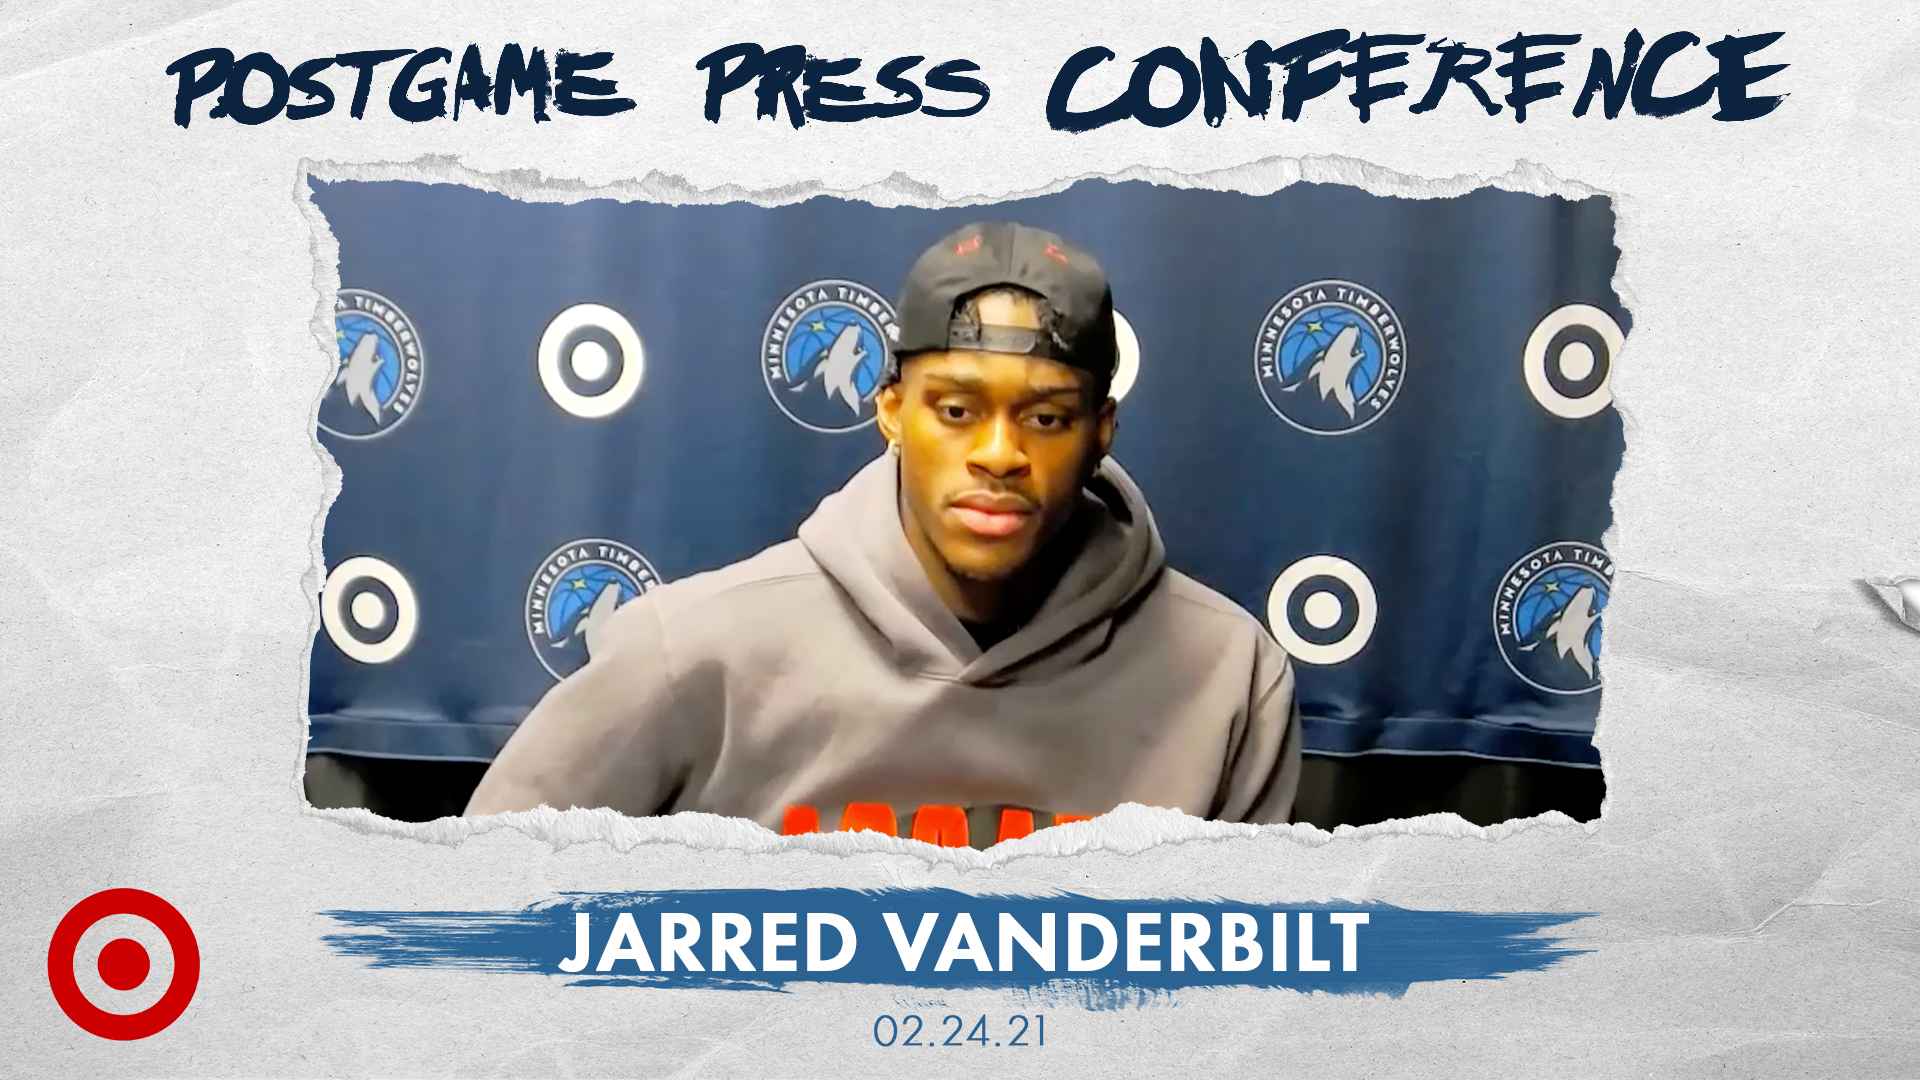 Jarred Vanderbilt Postgame Press Conference - February 24, 2021